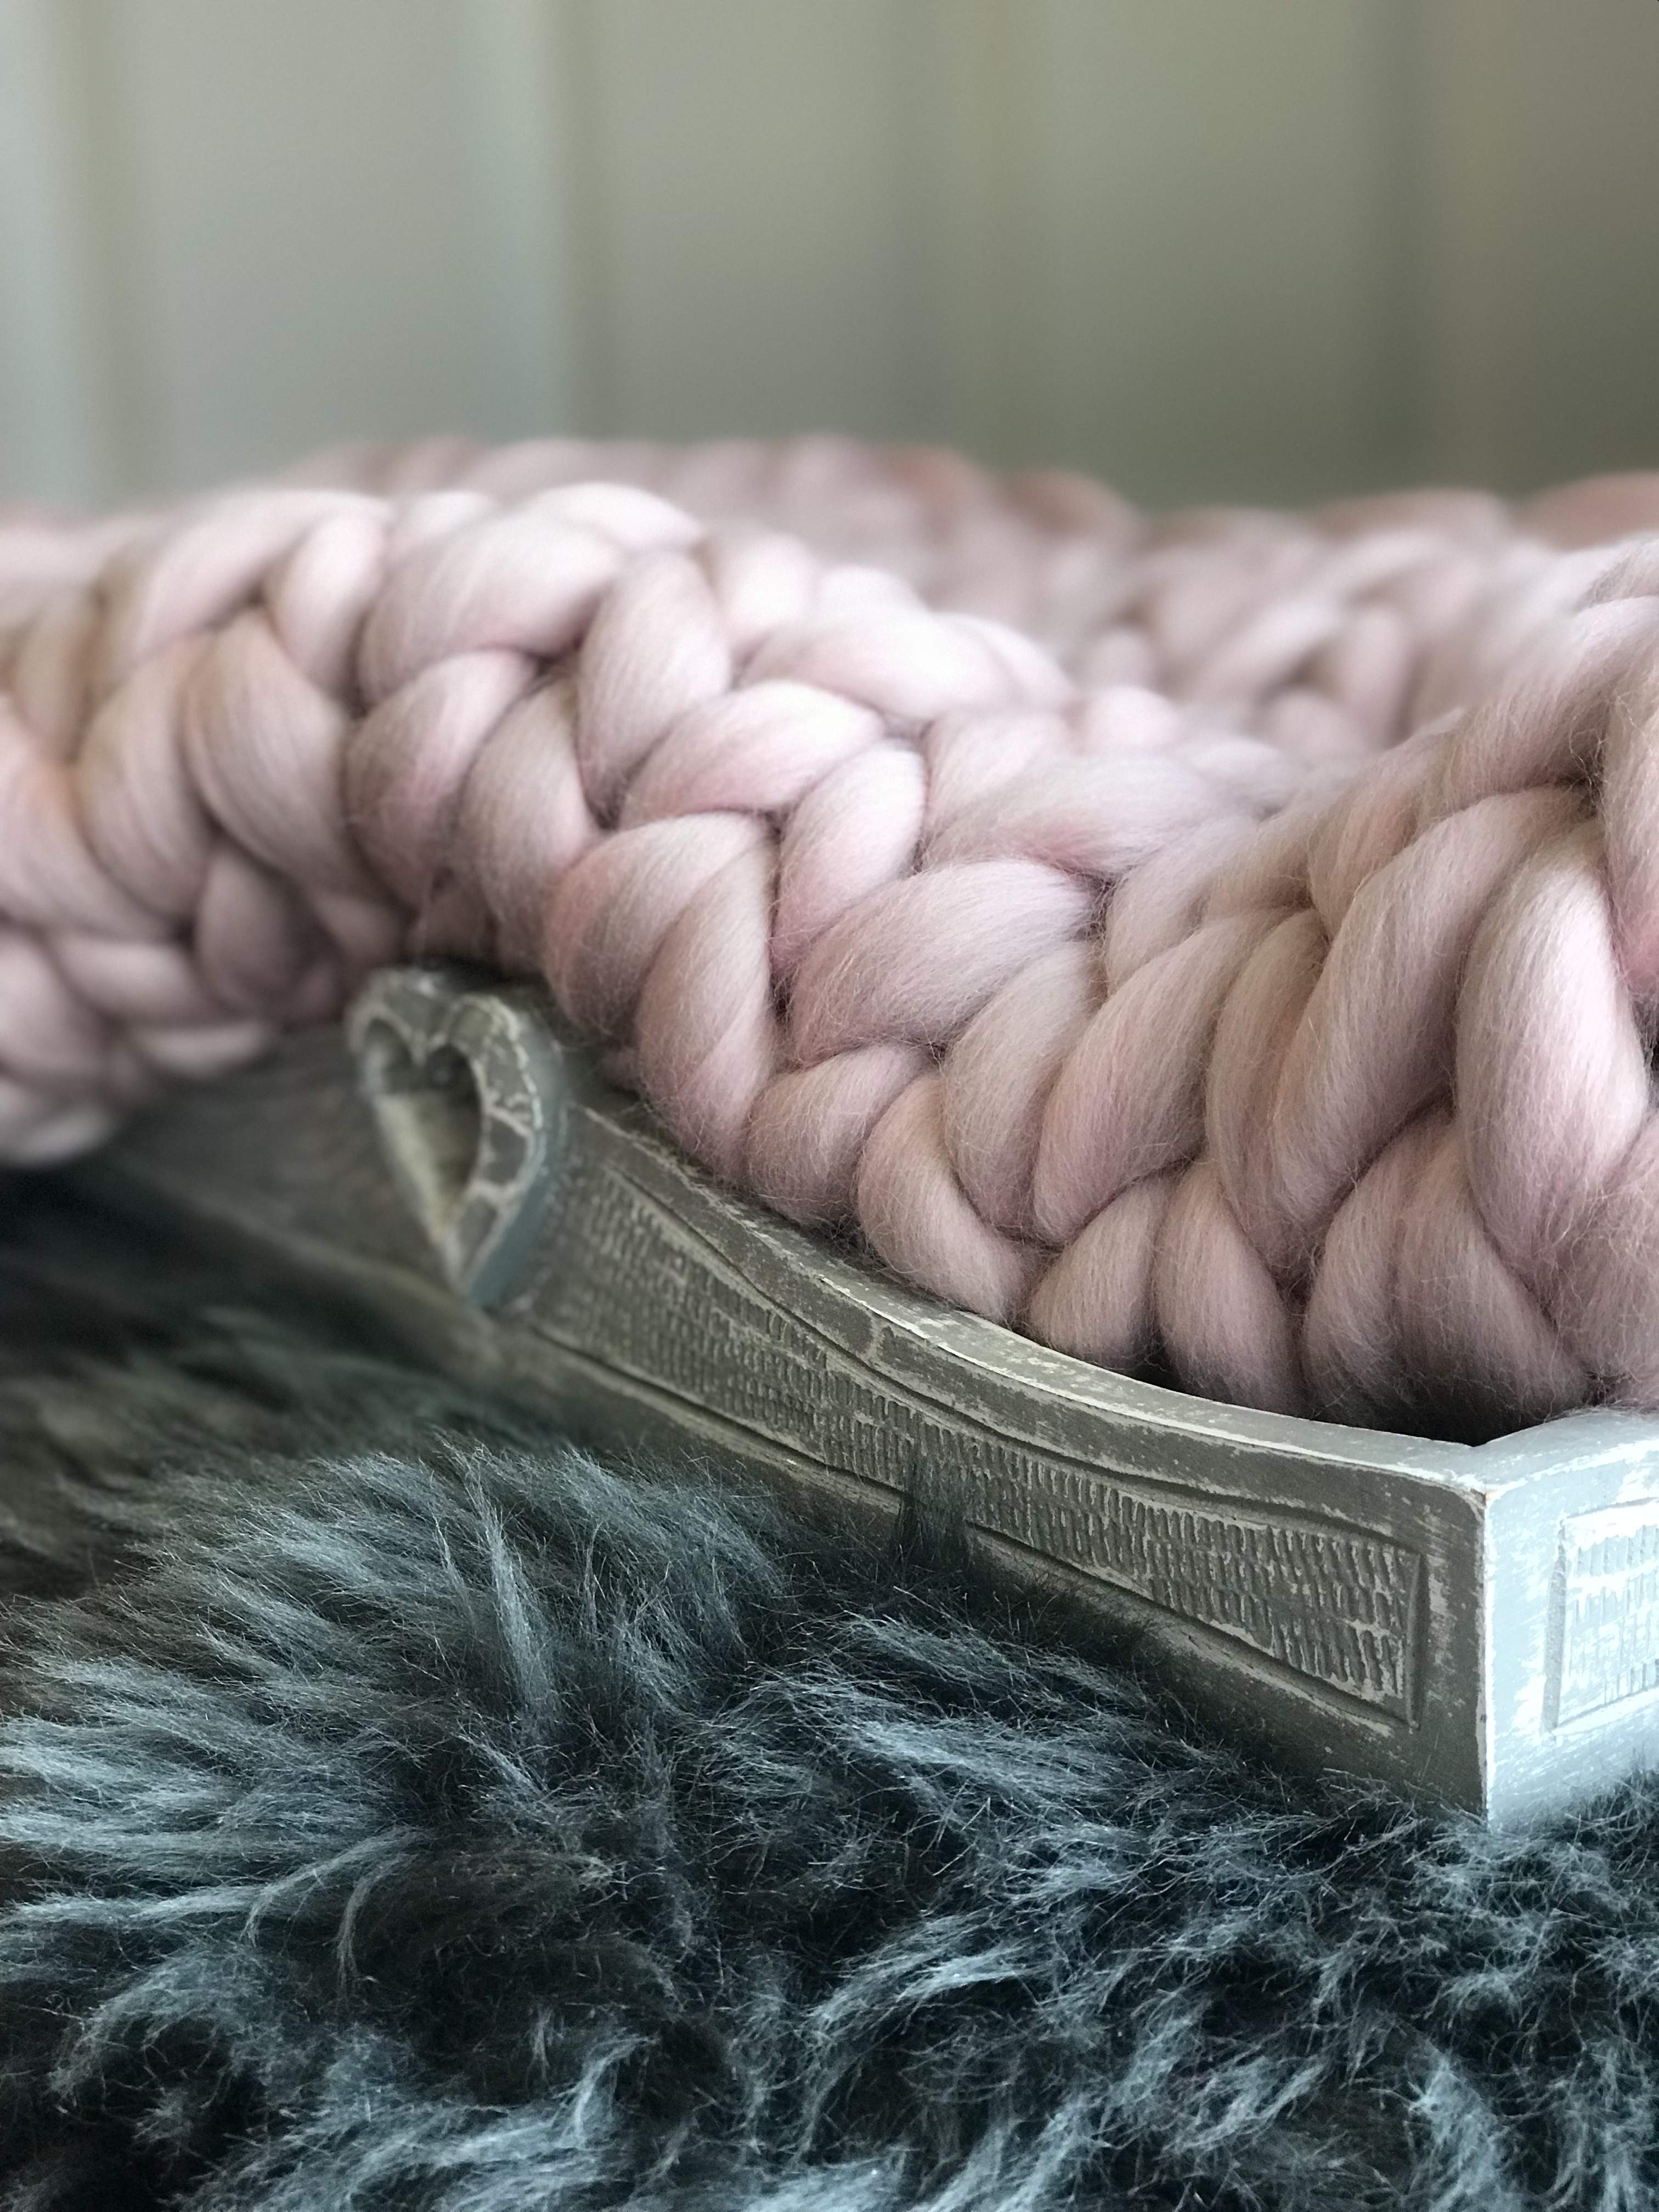 Bespoke - Blush blanket/throw